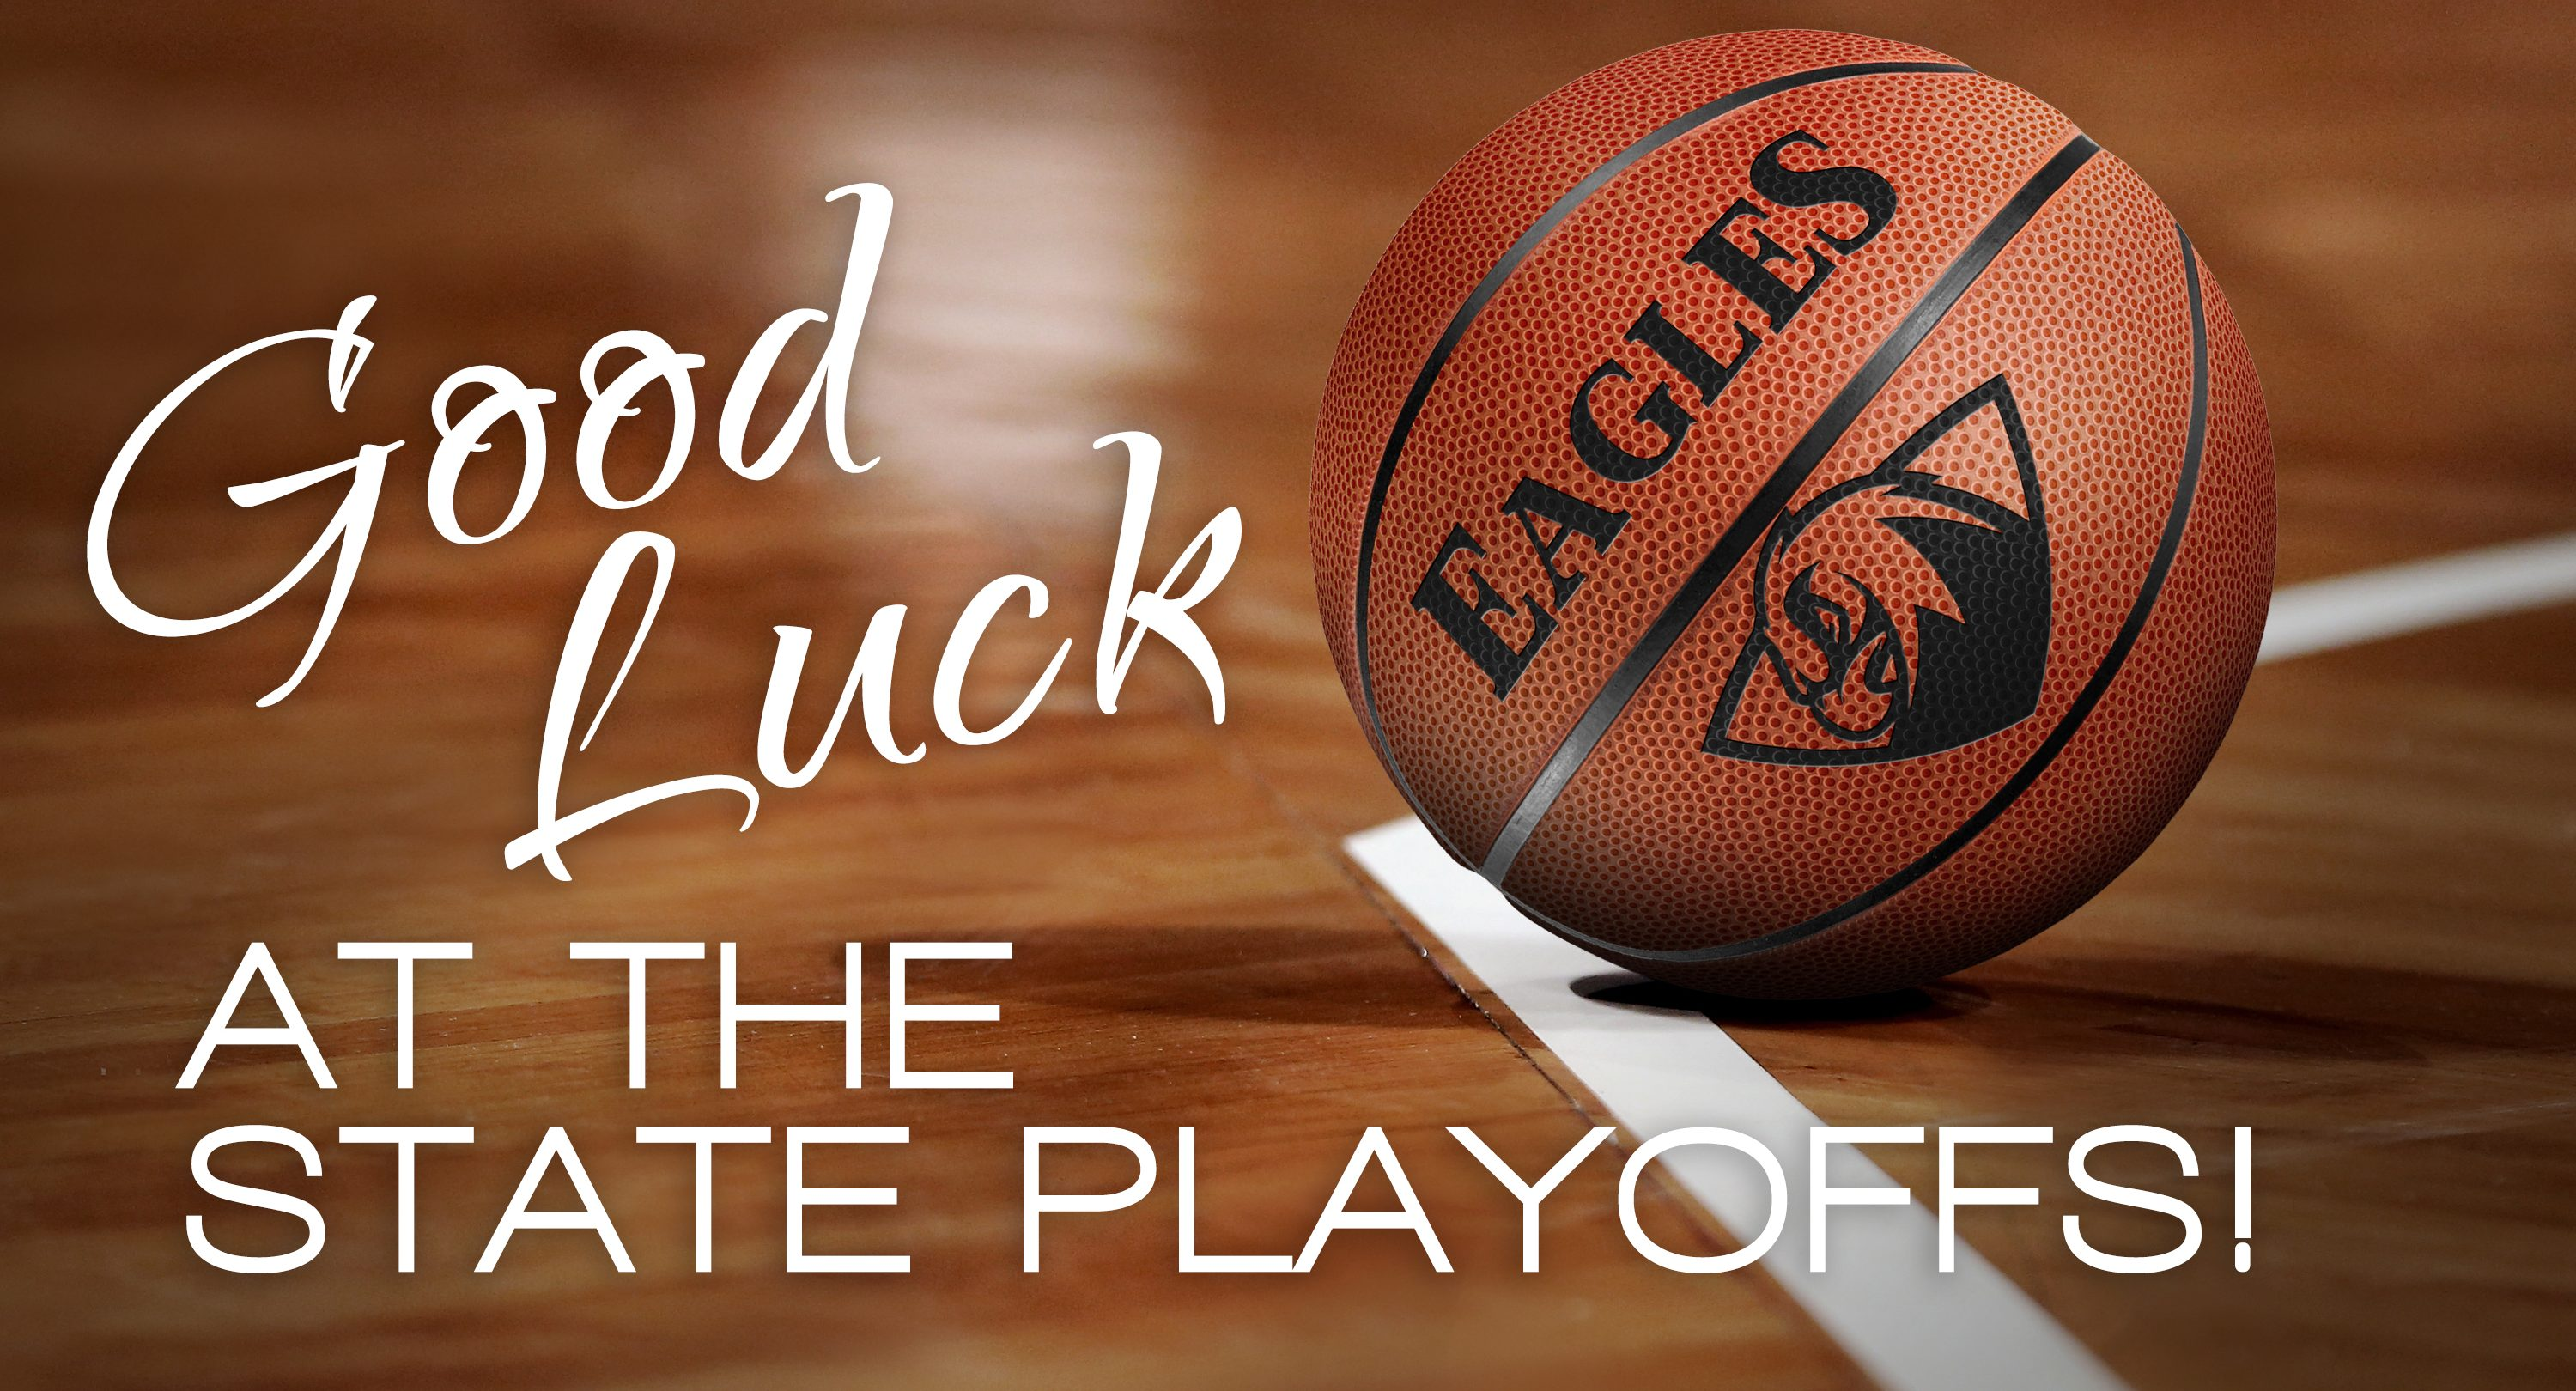 Boys Varsity Eagles Basketball Team to Compete in State Playoffs!